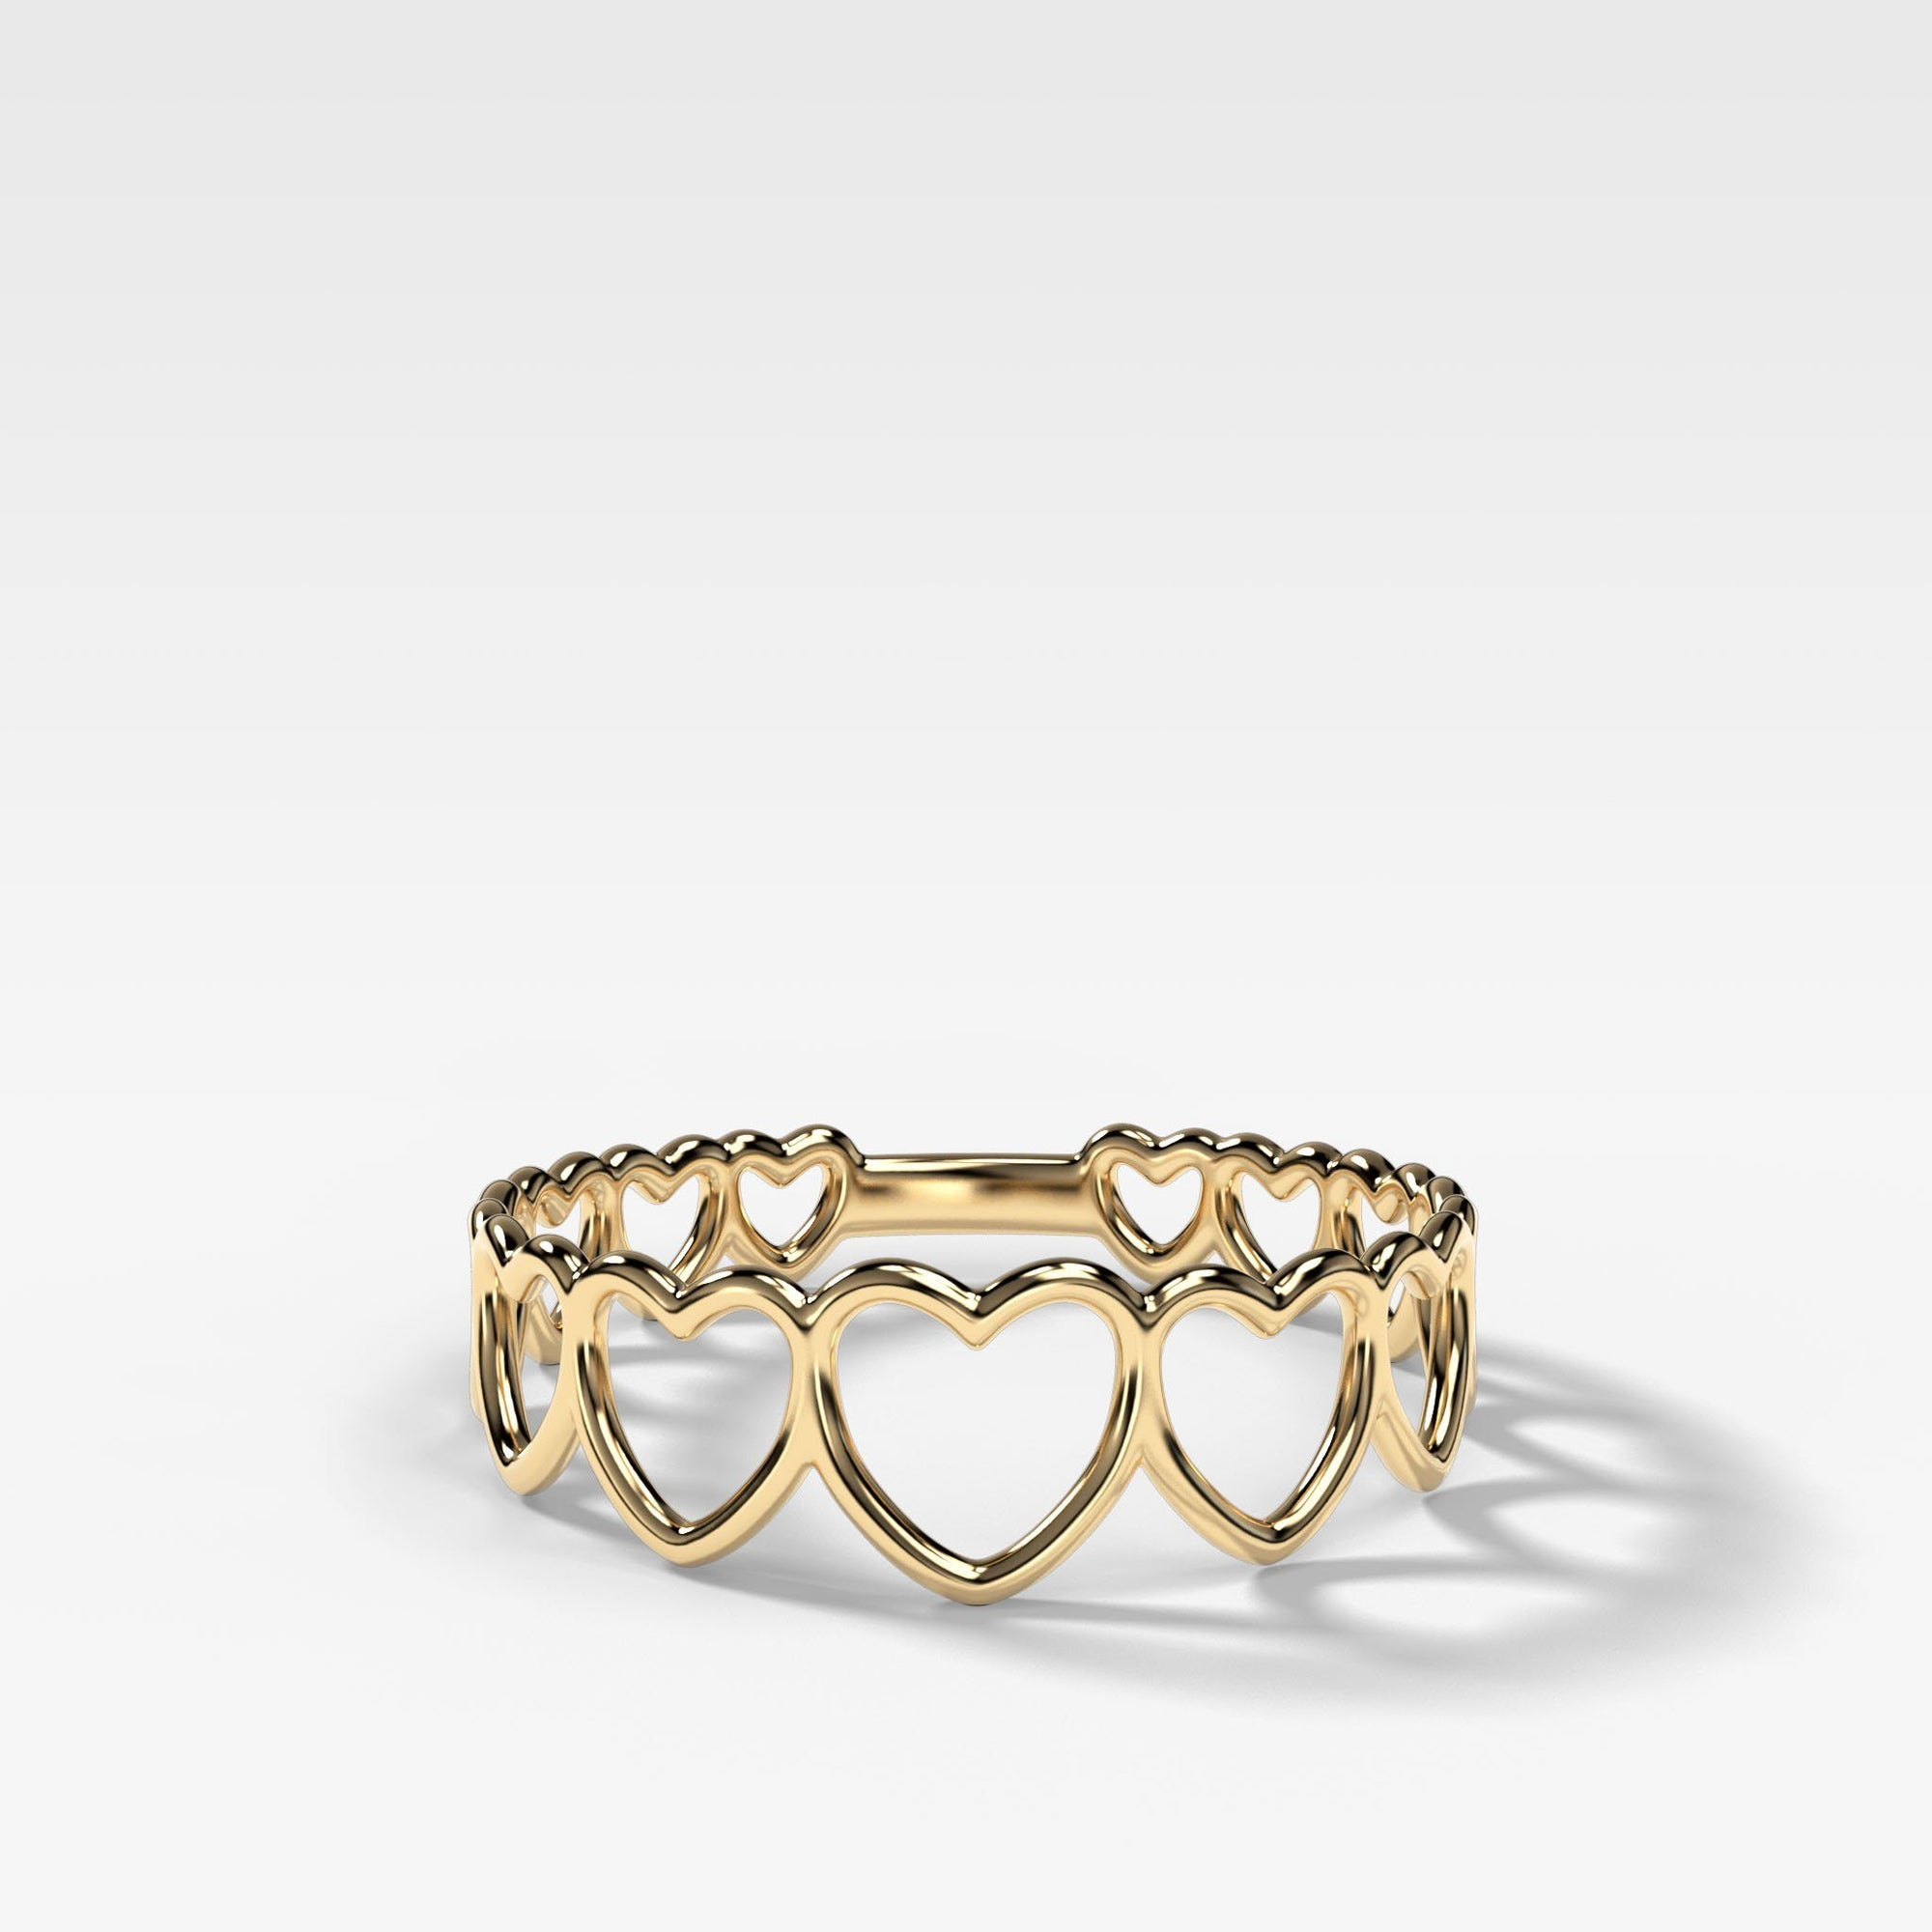 Graduated Heart Stacker Ring in Yellow Gold by Good Stone